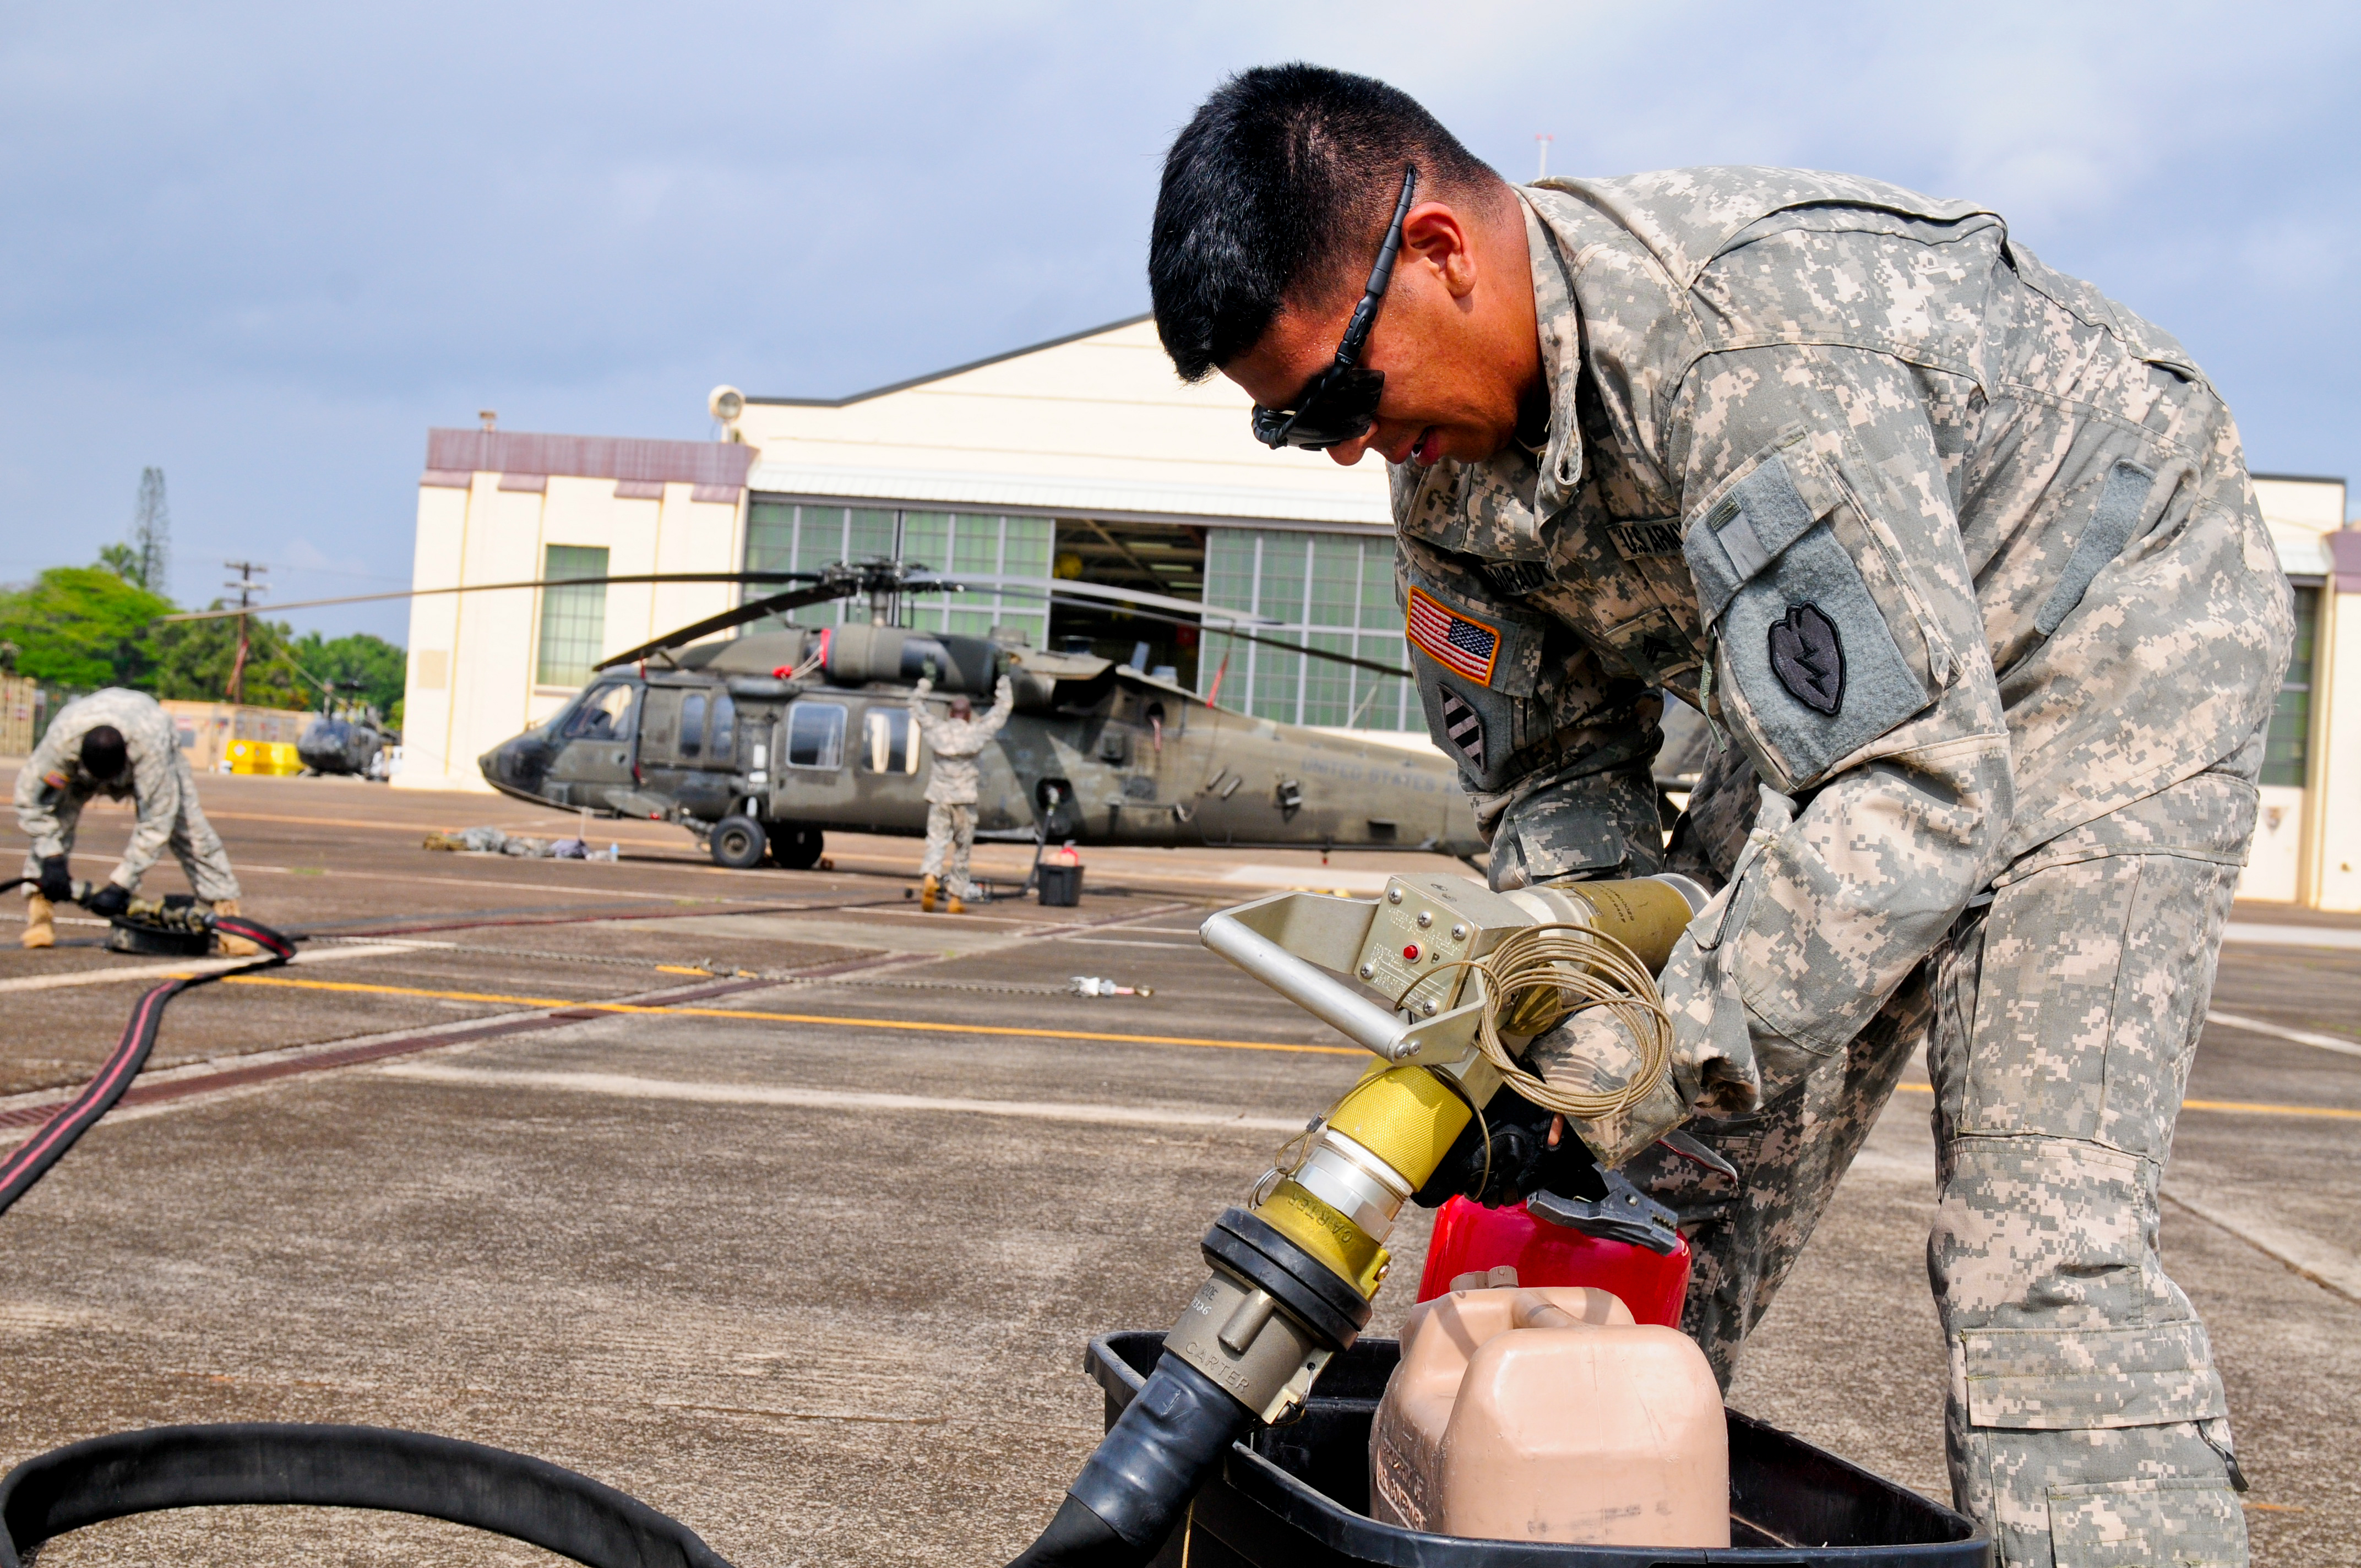 helicopter refueling with File U S  Army Sgt  Greg Alvarado  A Petroleum Supply Specialist With Echo  Pany  2nd Battalion  25th Aviation Regiment  25th  Bat Aviation Brigade  25th Infantry Division  Inspects A Fuel Nozzle On 131120 A Ug106 034 on Giving Eyes To Aircraft Carriers as well Types Of Aviation Fuel as well Boeing Ch 47 Chinook further File RAF Puma HC1 Helicopter Over London MOD 45153141 also Glasgow Helicopter Crash Mystery 76kg Of Fuel In Tank.